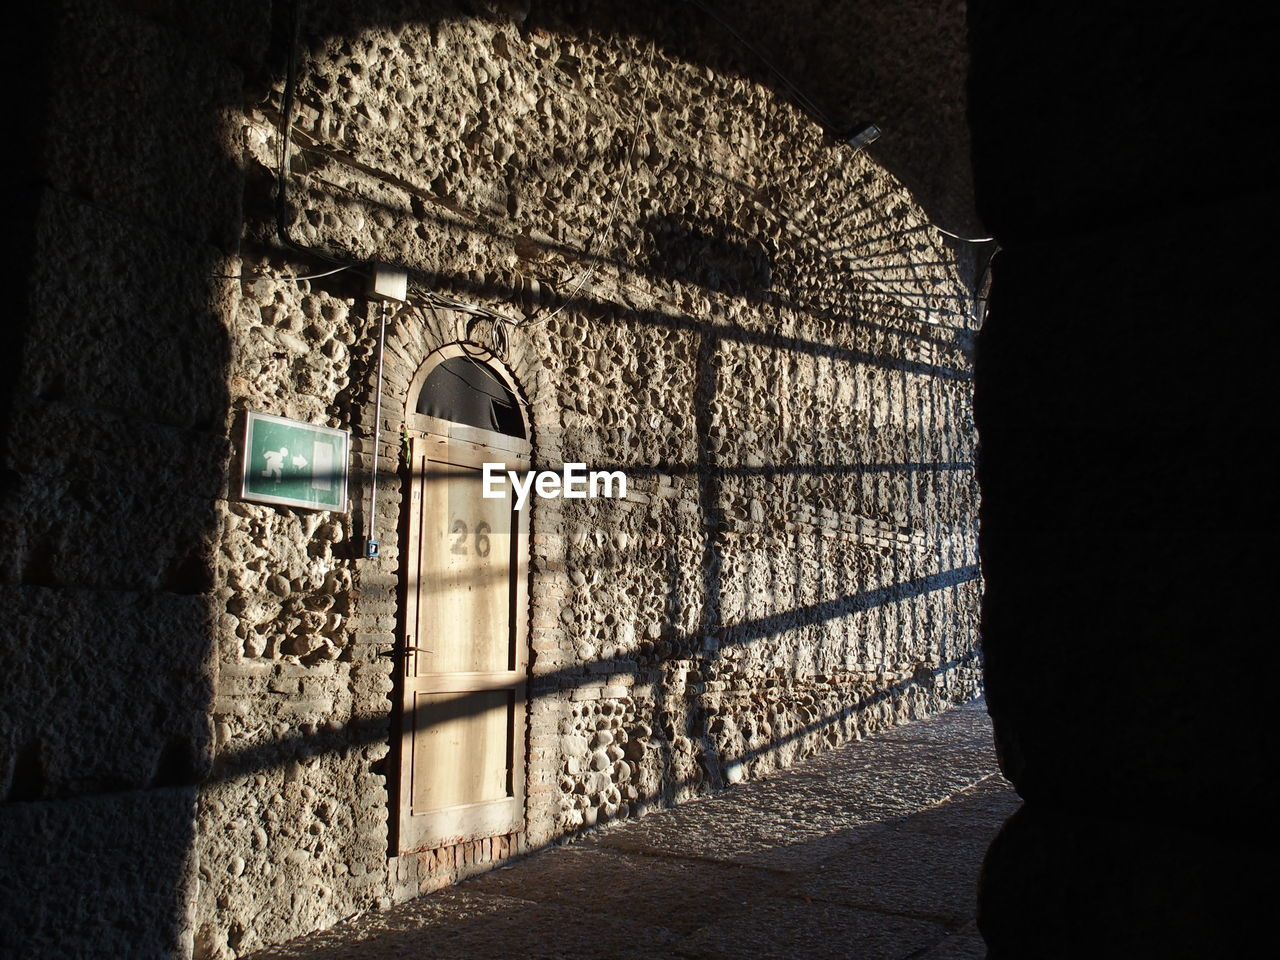 Shadow on stone wall in archway